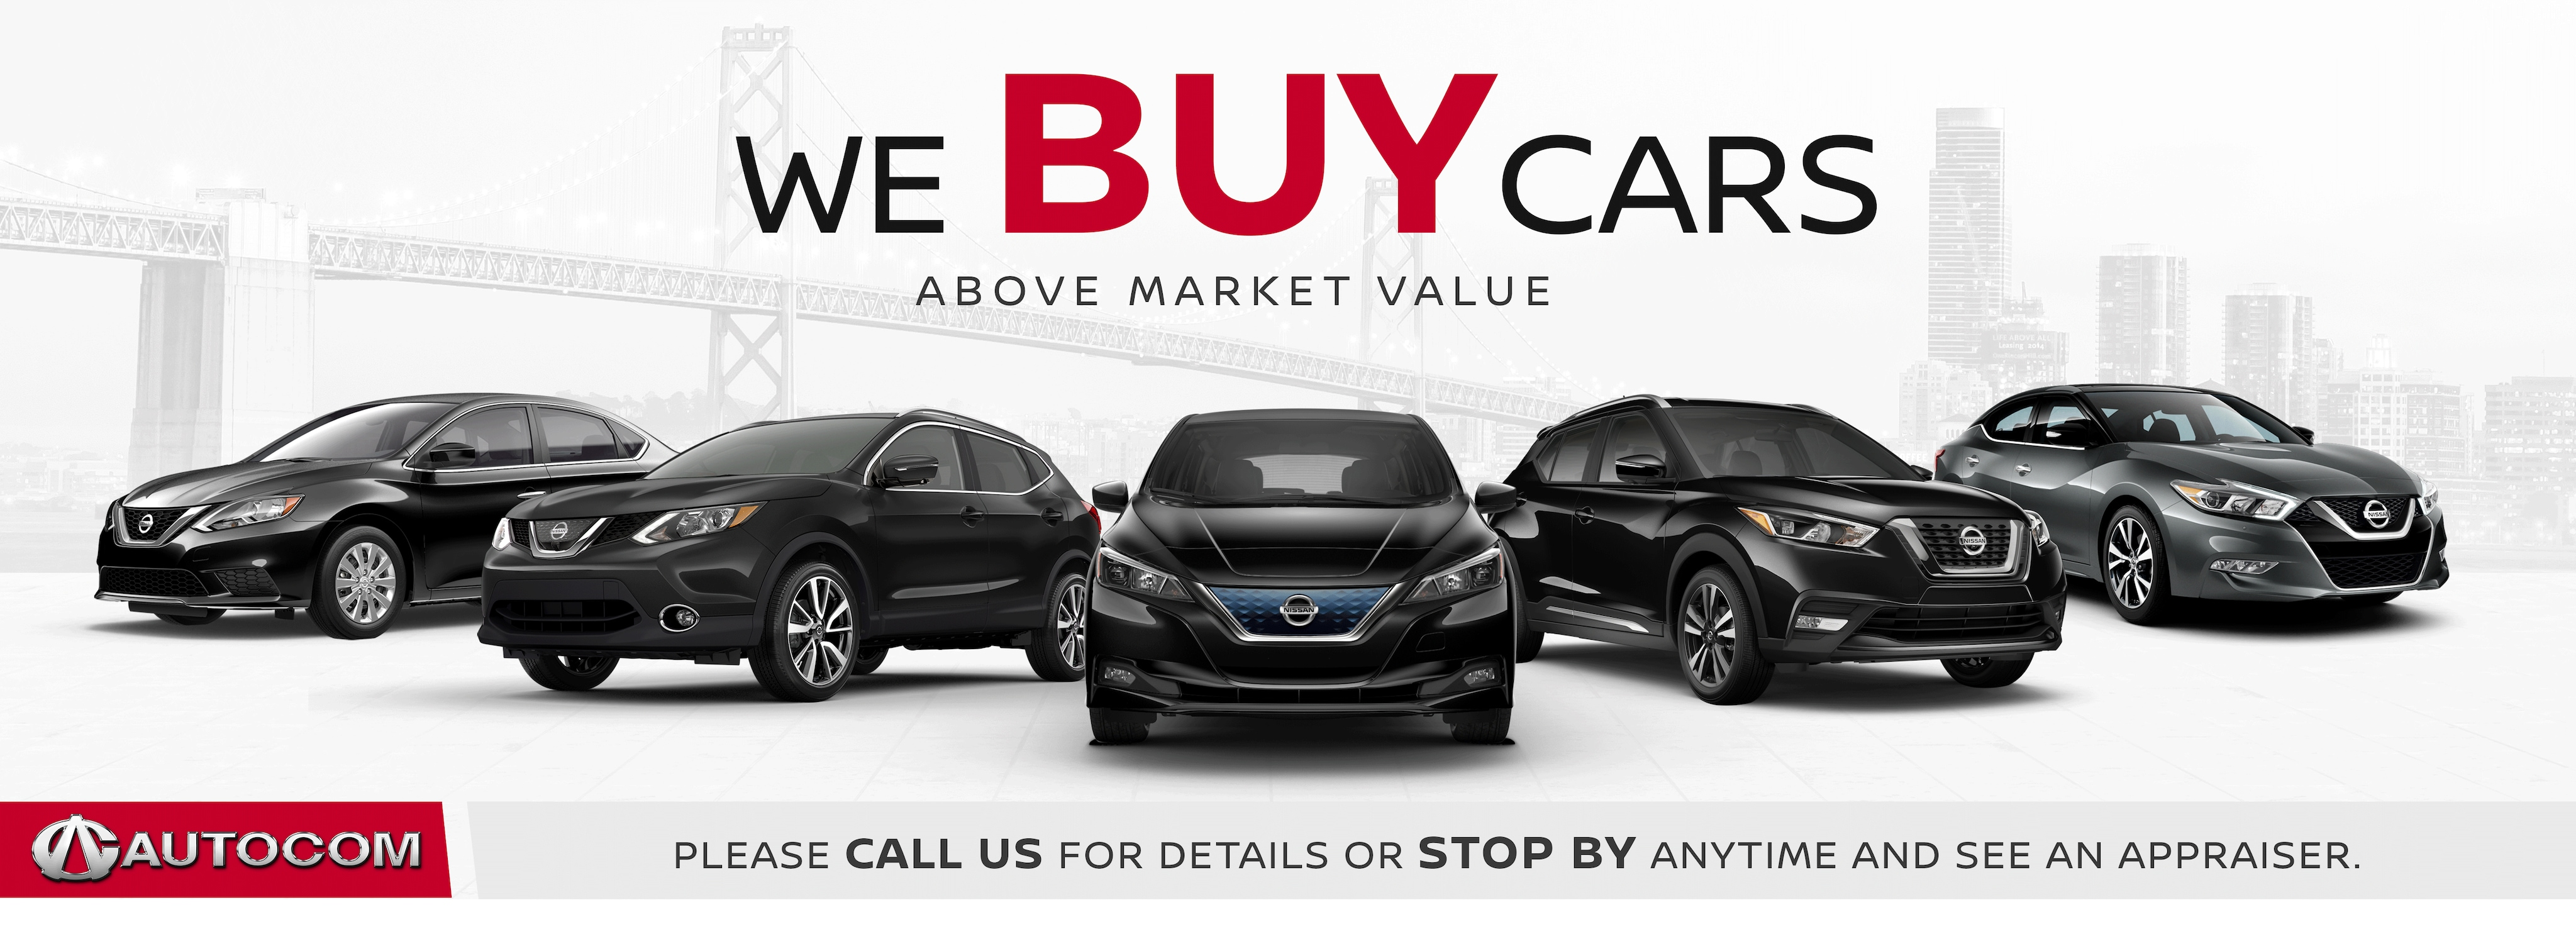 0.0/0.9/1.9% Special APR For 36/60/72 Months $259 Lease With $3,979 Due At  Signing For 36 Months $1,000 Loyalty Cash Available For Returning Nissan  LEAF ...